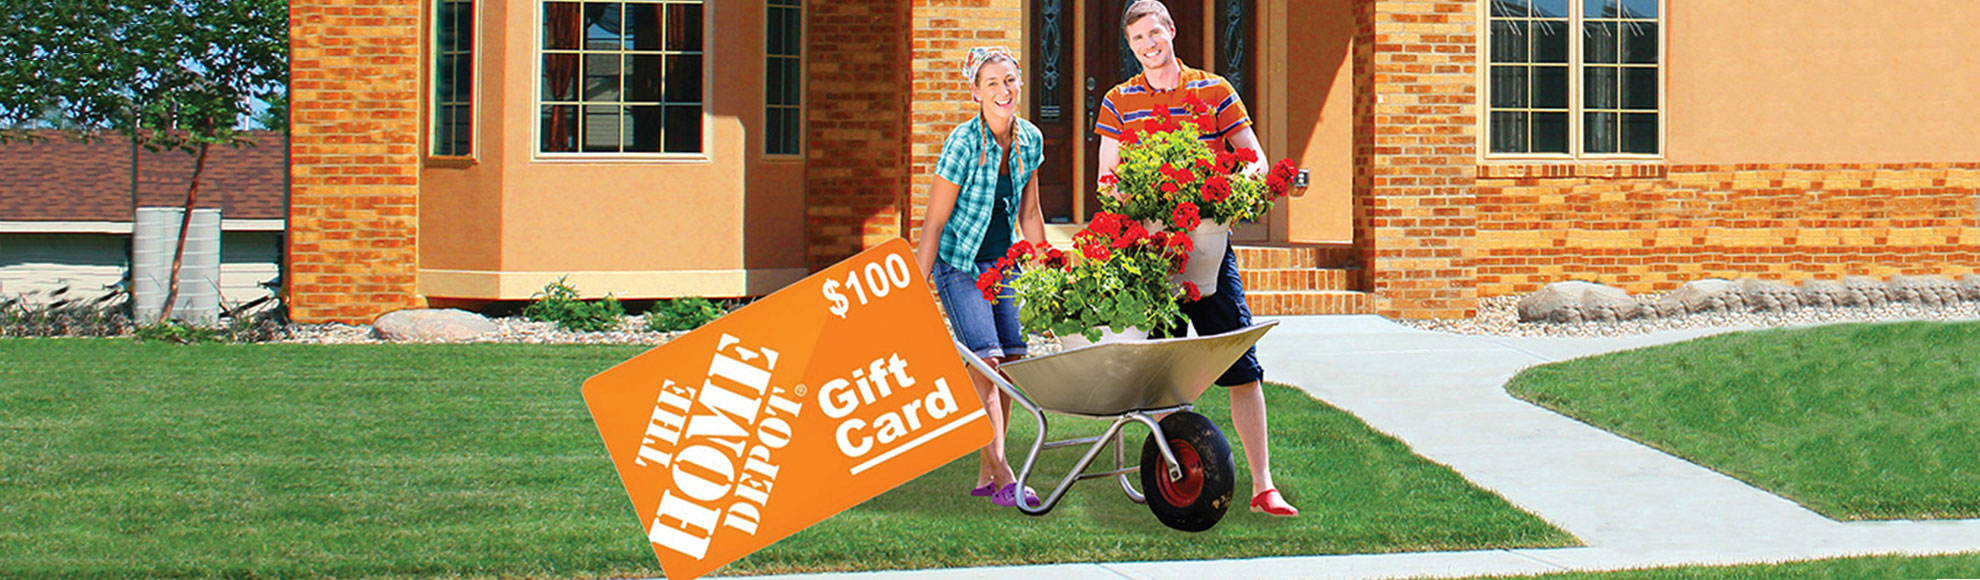 New homeowners and Home Depot gift card